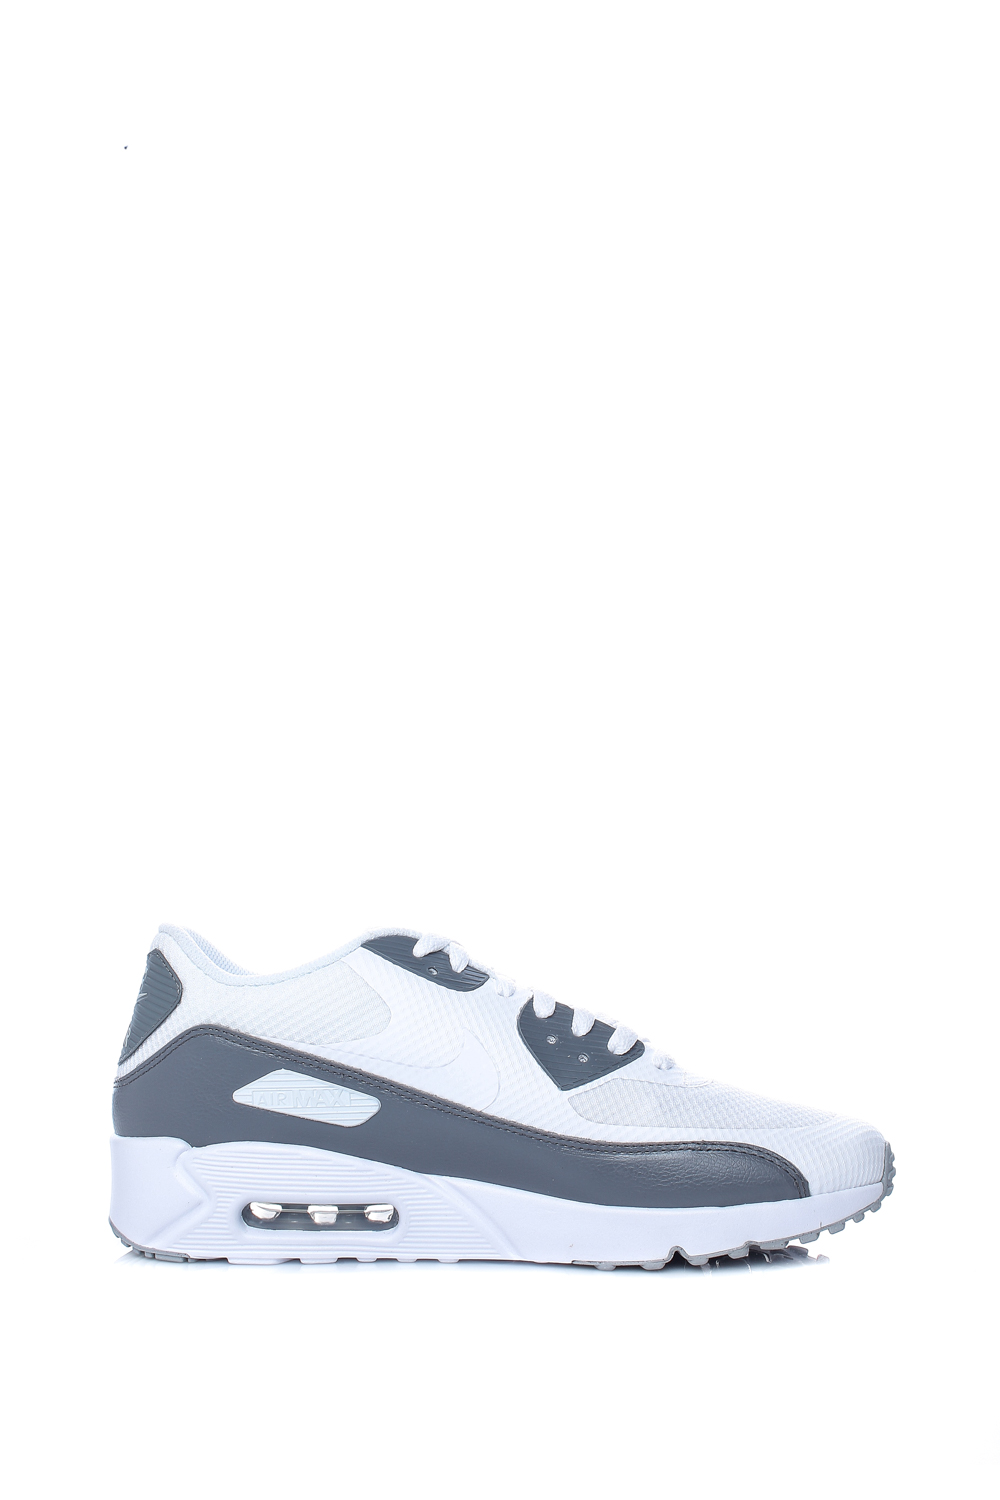 NIKE – Ανδρικά αθλητικά παπούτσια Nike AIR MAX 90 ULTRA 2.0 ESSENTIAL λευκά – μαύρα